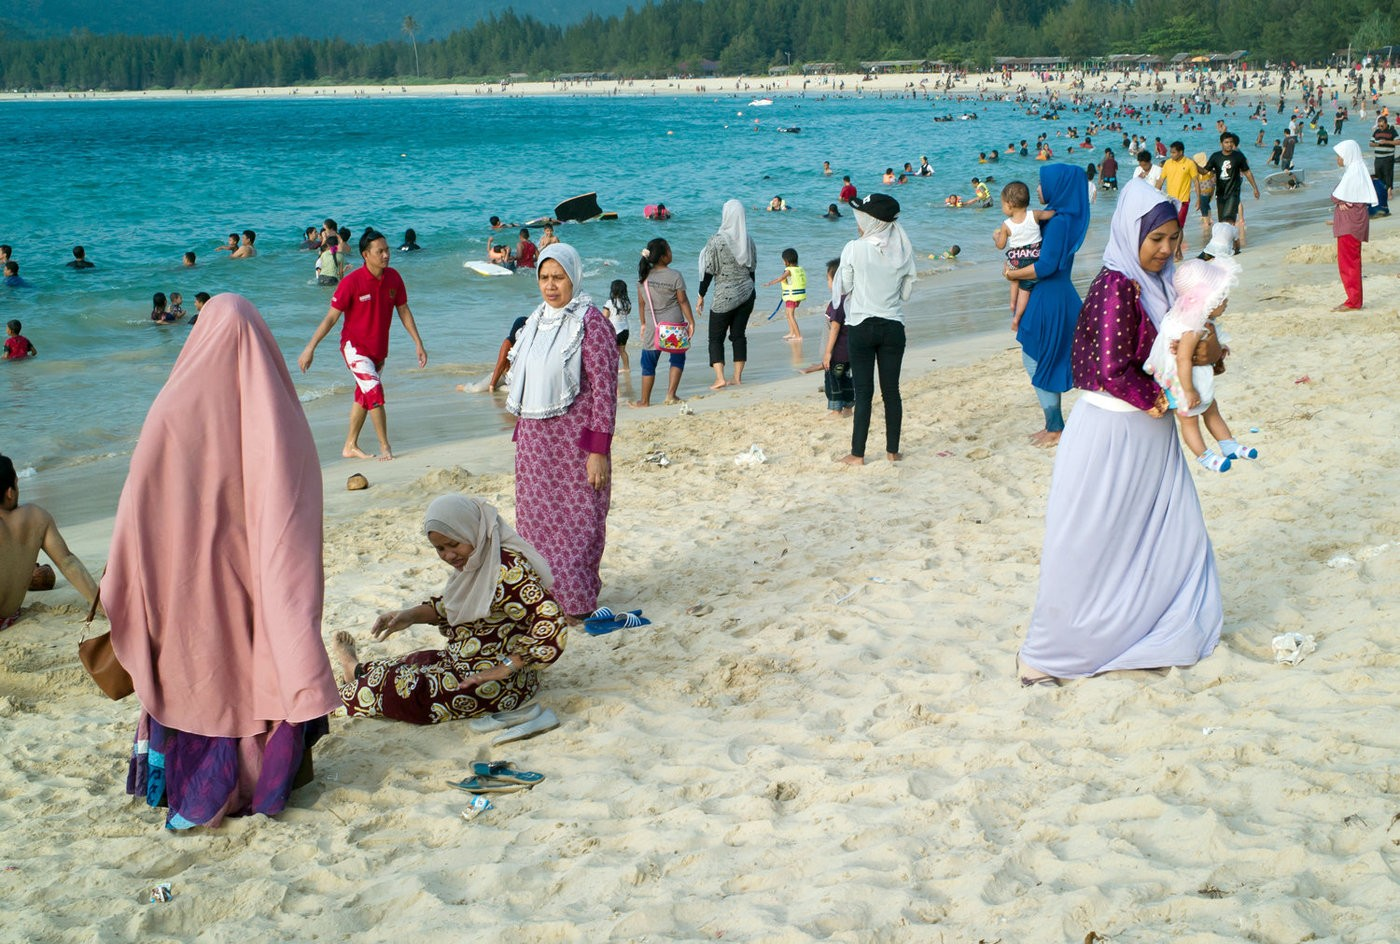 Medium banda aceh strand